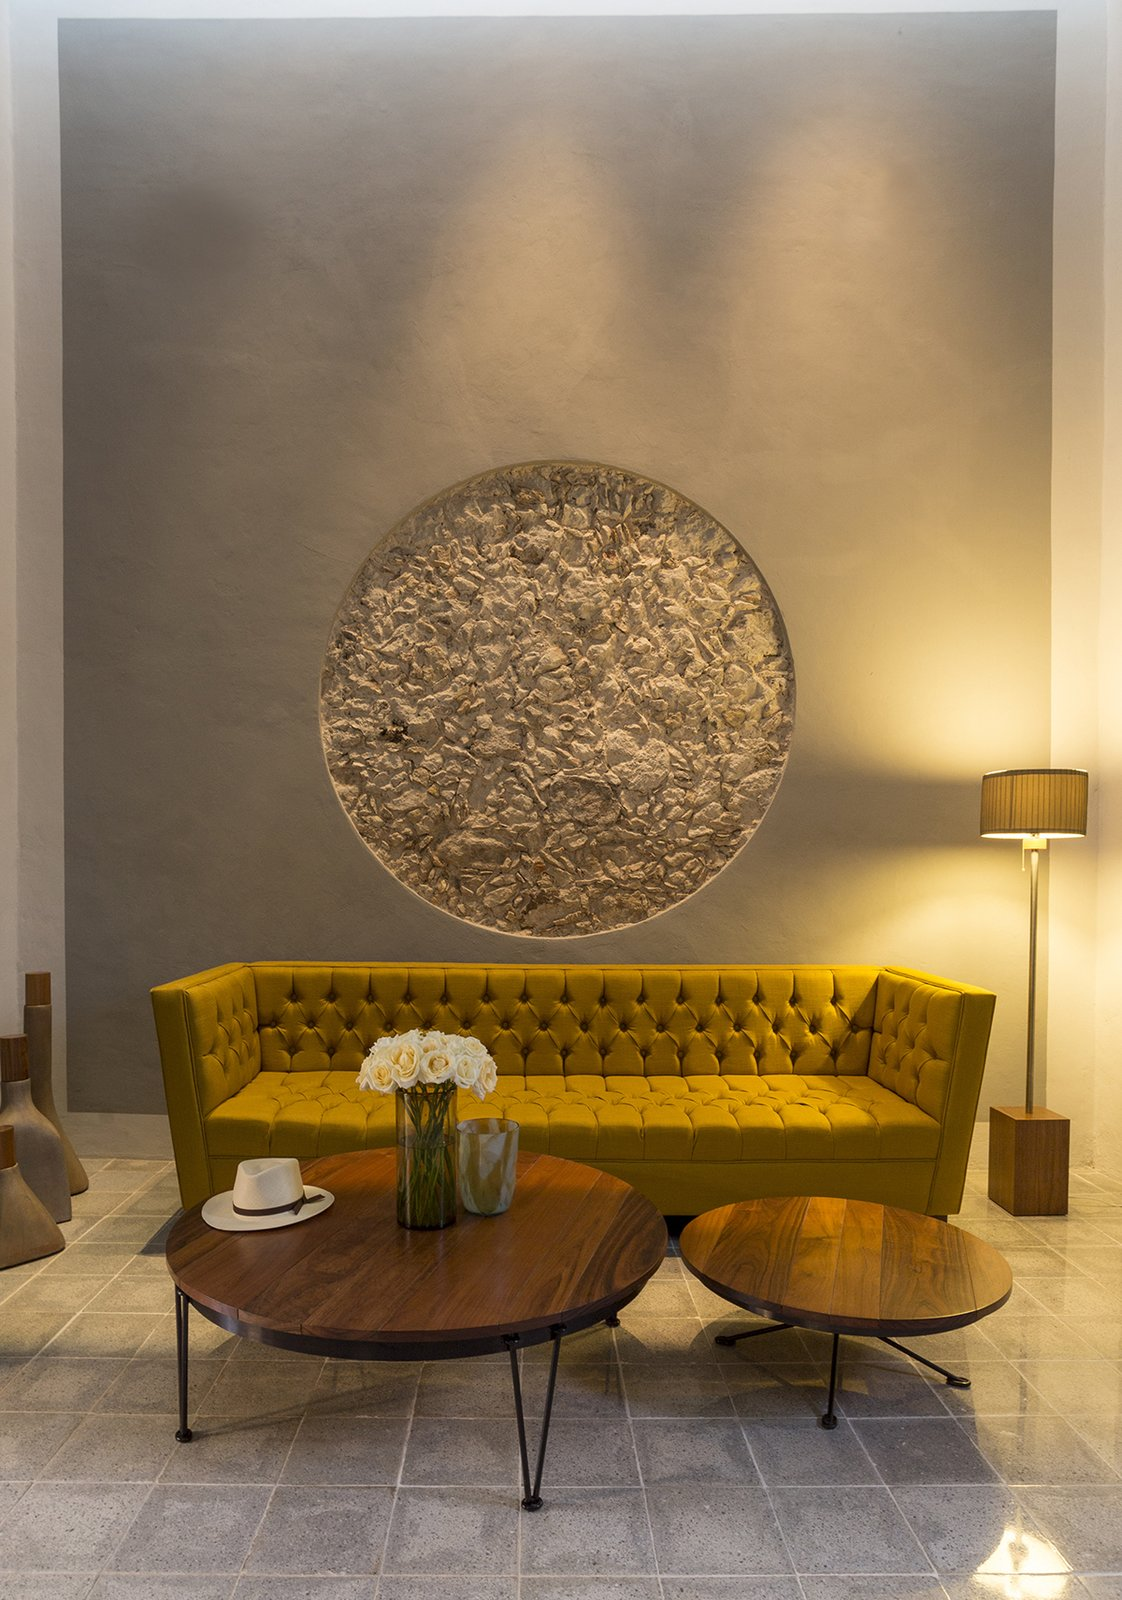 Living Room, Sofa, Coffee Tables, Track Lighting, and Cement Tile Floor The existing Stone walls were preserved and just exposed in one spot of the house to remid the preexisting building  Lemon Tree House by Taller Estilo Arquitectura S de R.L de C.V